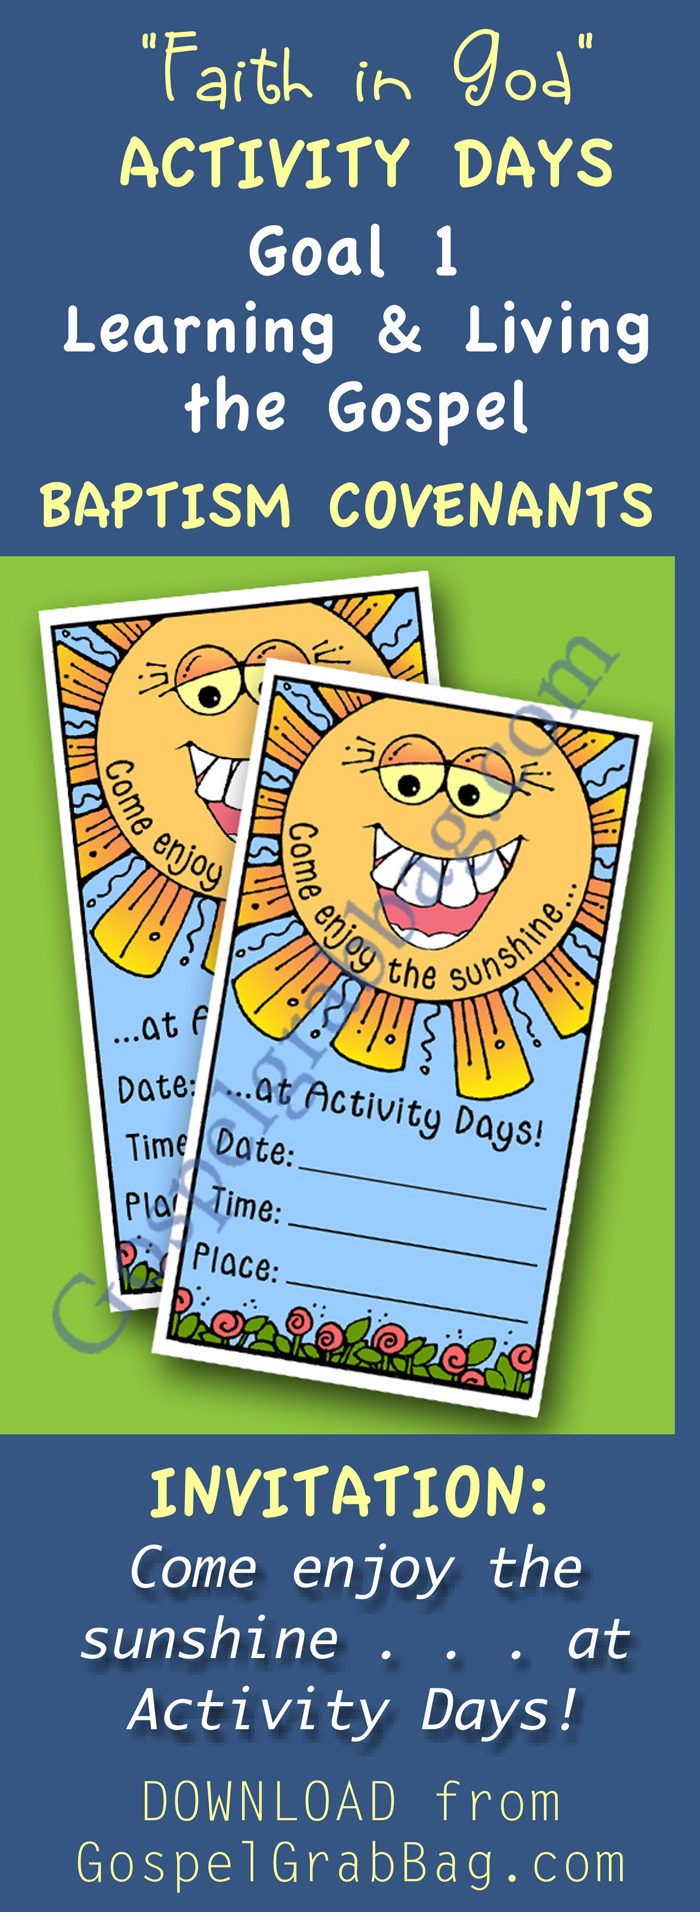 Invite Activity Days girls to this activity using invitation. Other ...